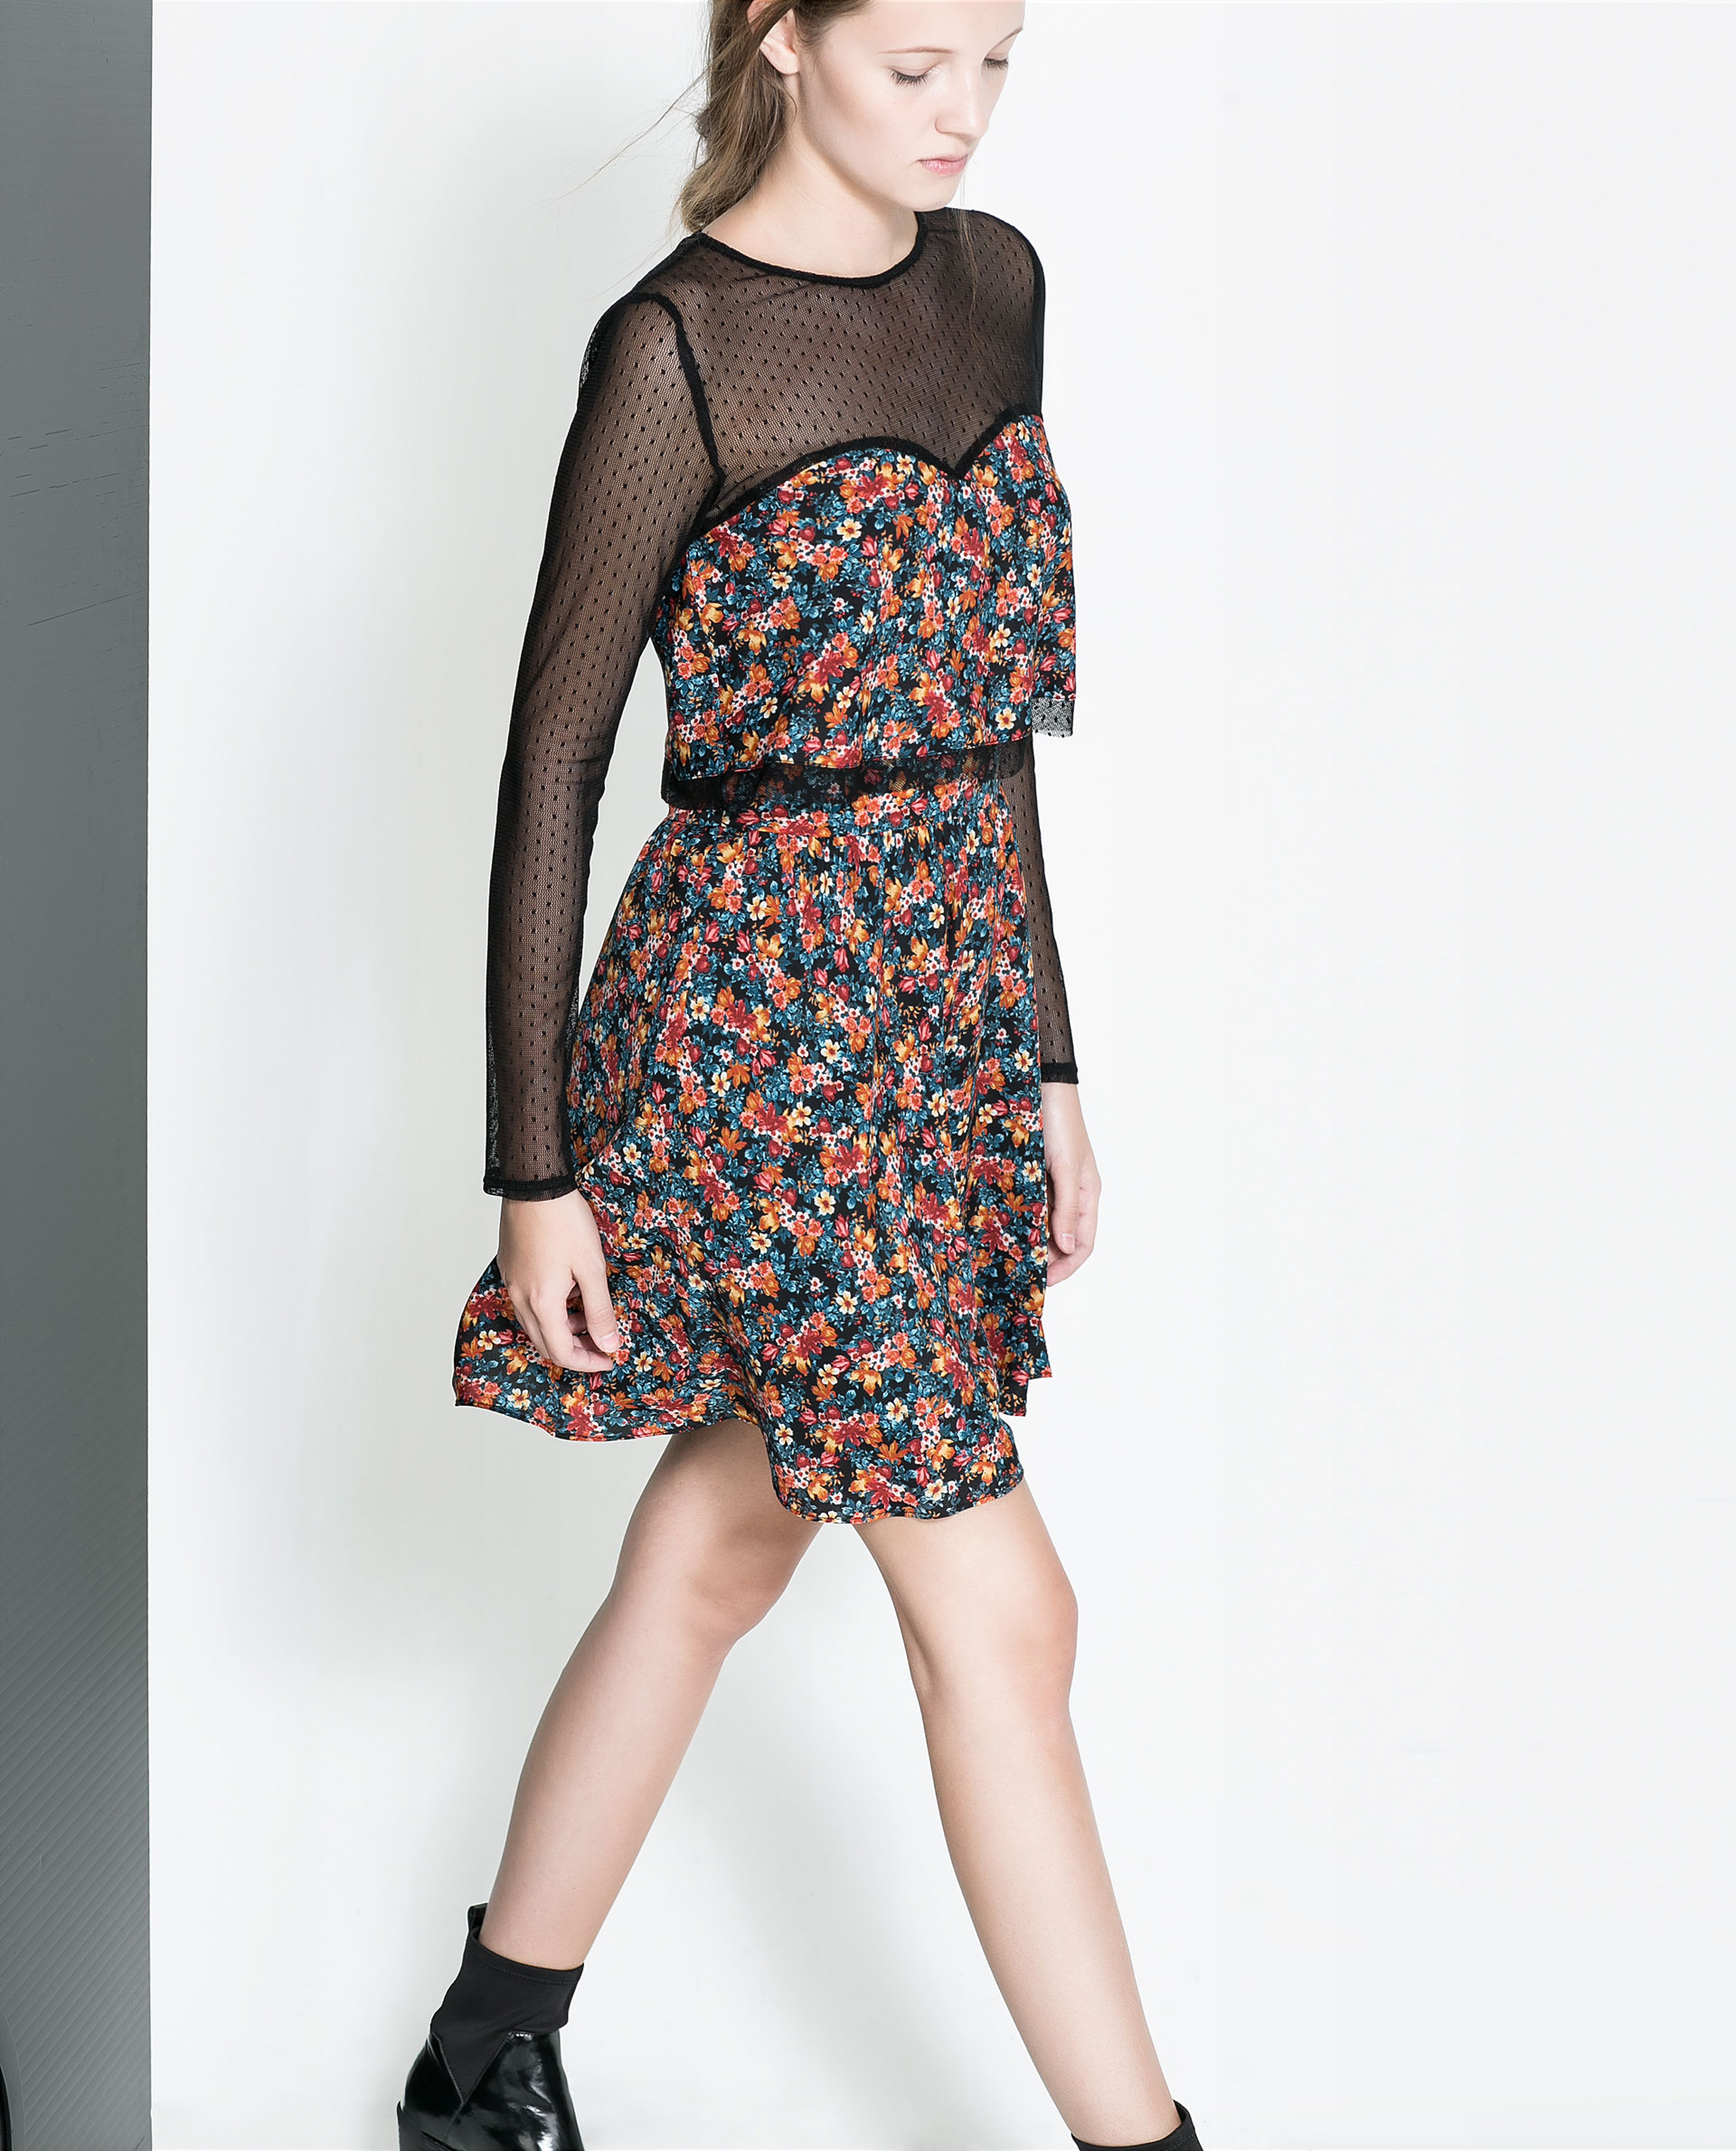 zara floral dress sold out